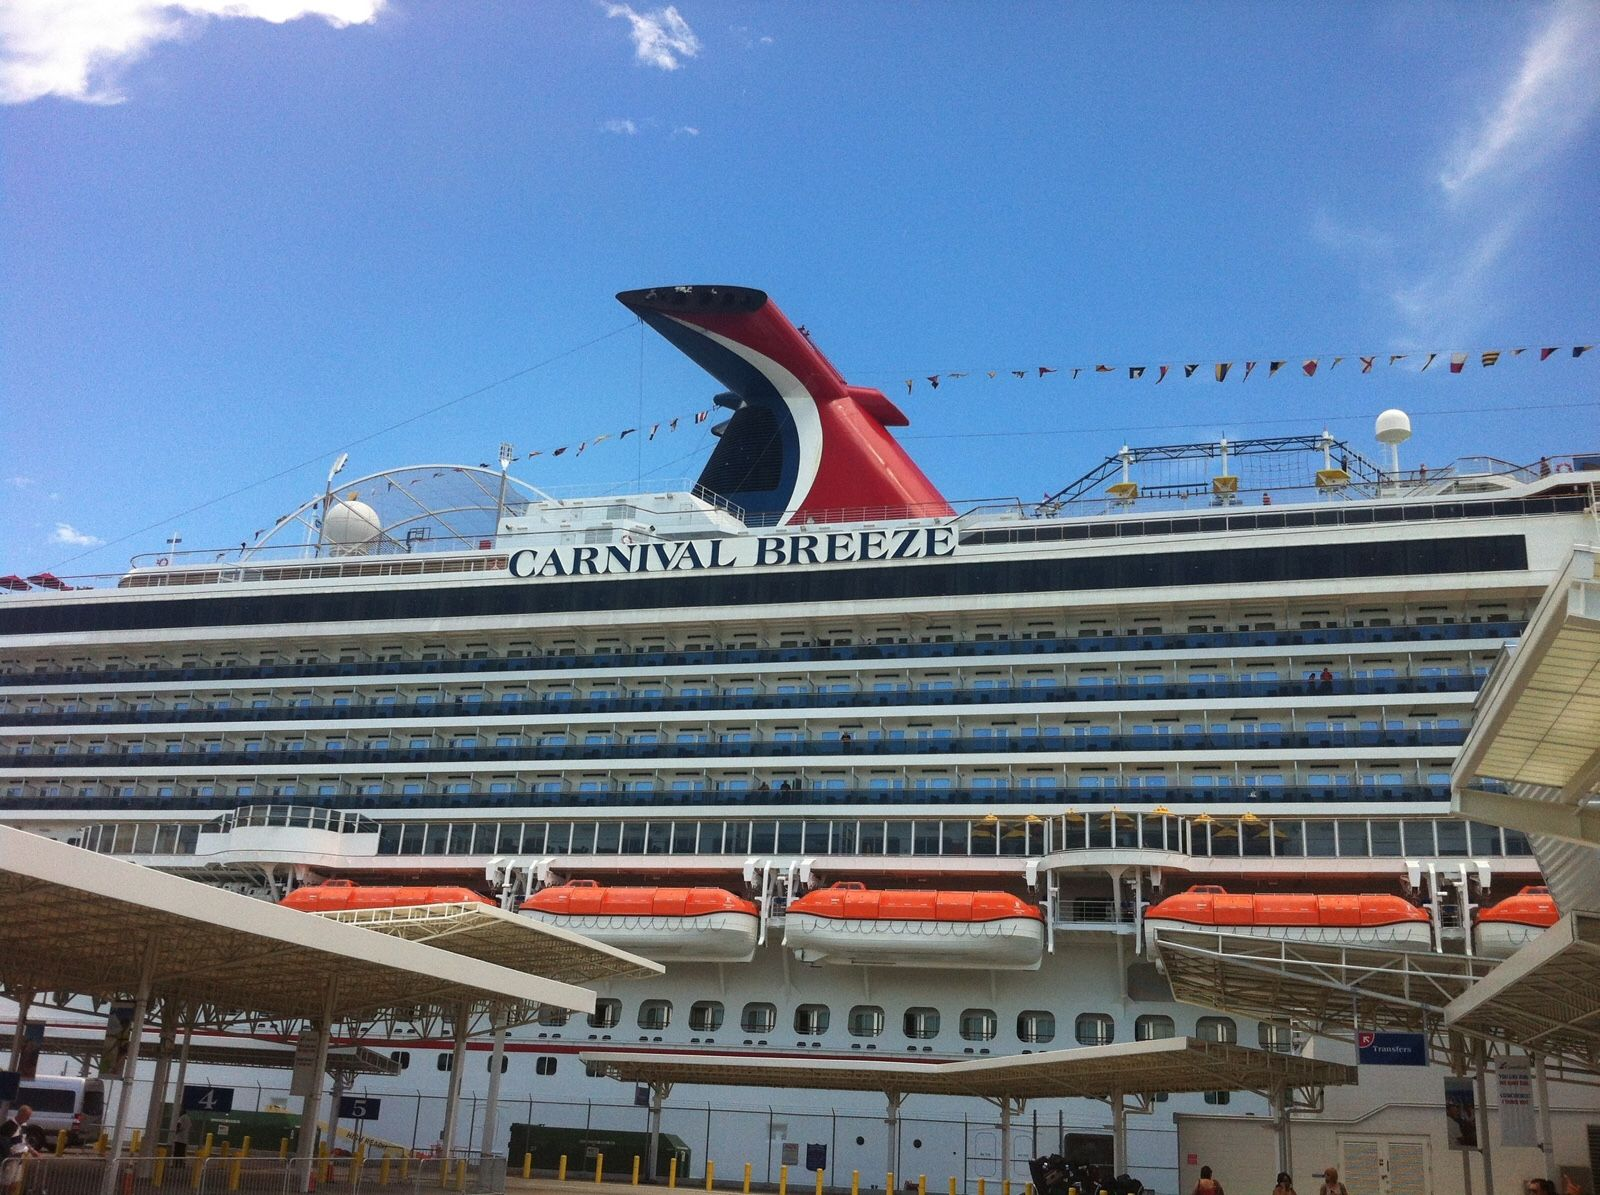 Carnival breeze review for booking our next cruise